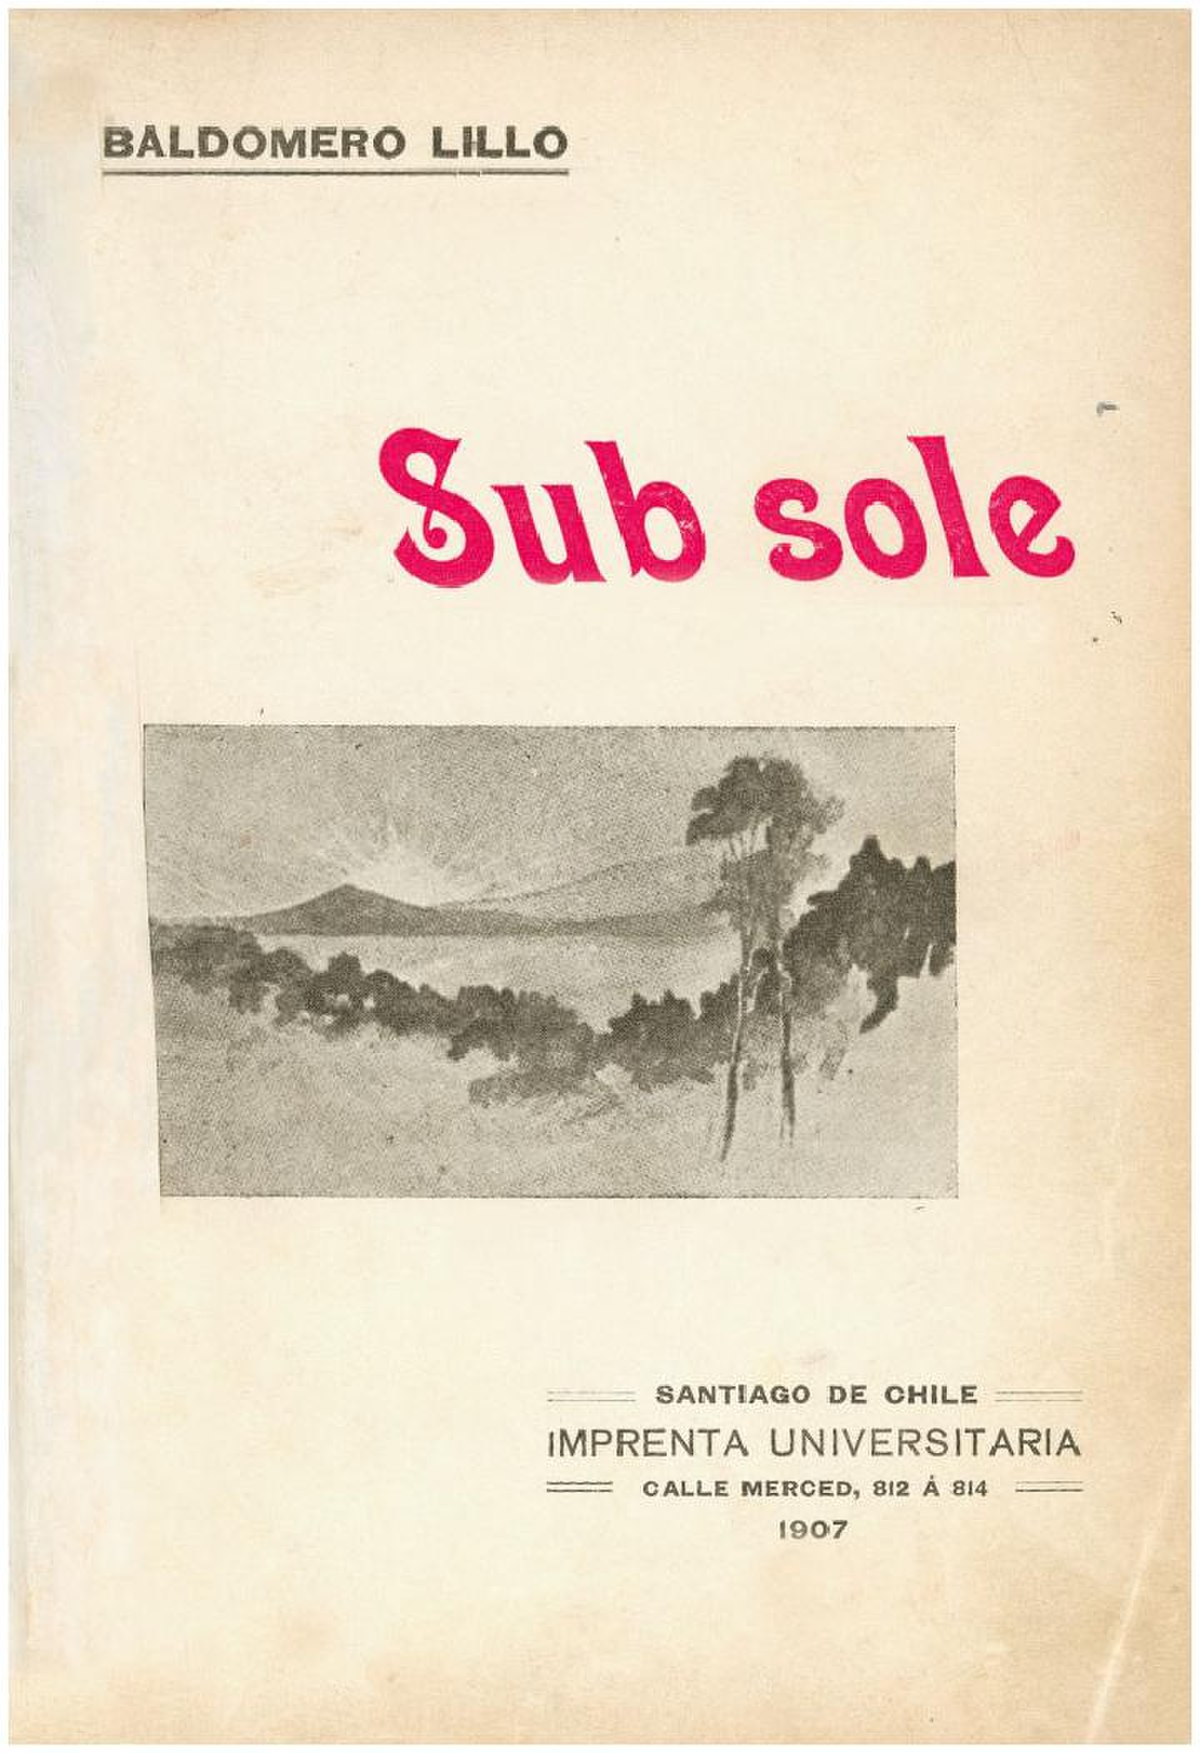 Sub sole - Wikipedia, la enciclopedia libre